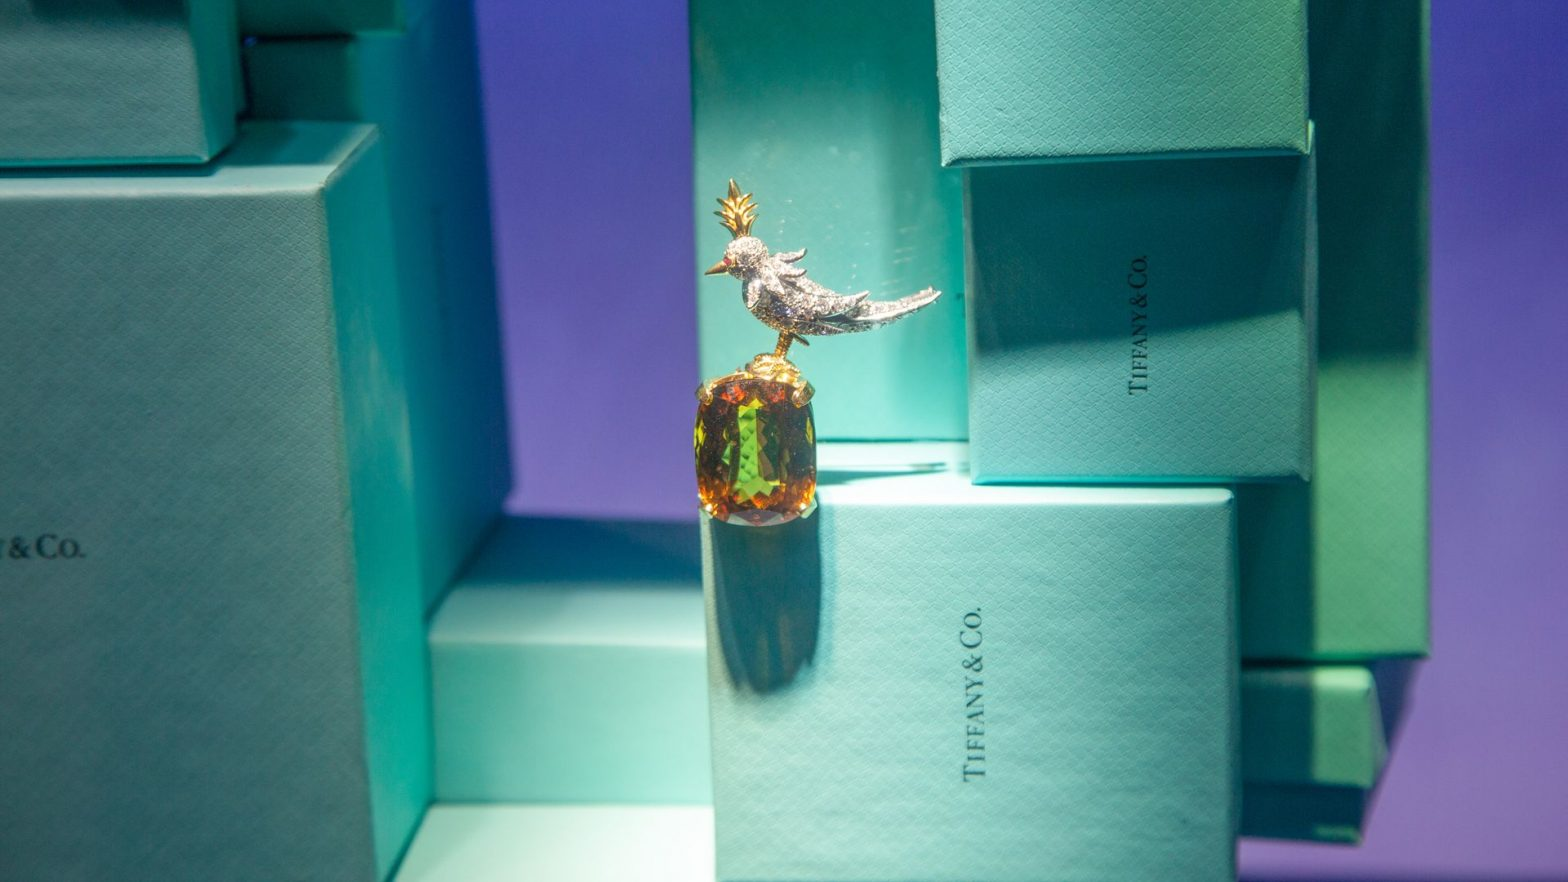 Report: LVMH agrees to buy Tiffany & Co. for $18.5 billion – Axios